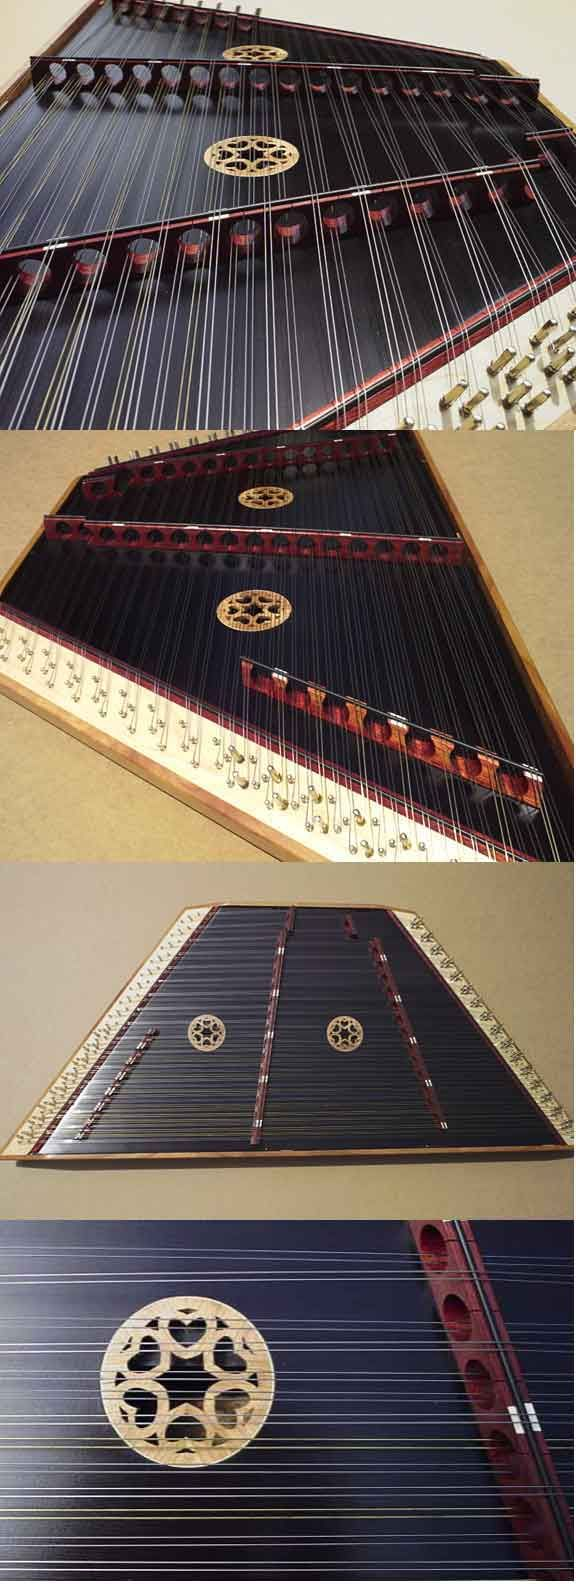 Hammered Dulcimer made by Michael C. Allen - Cloud Nine Musical Instruments